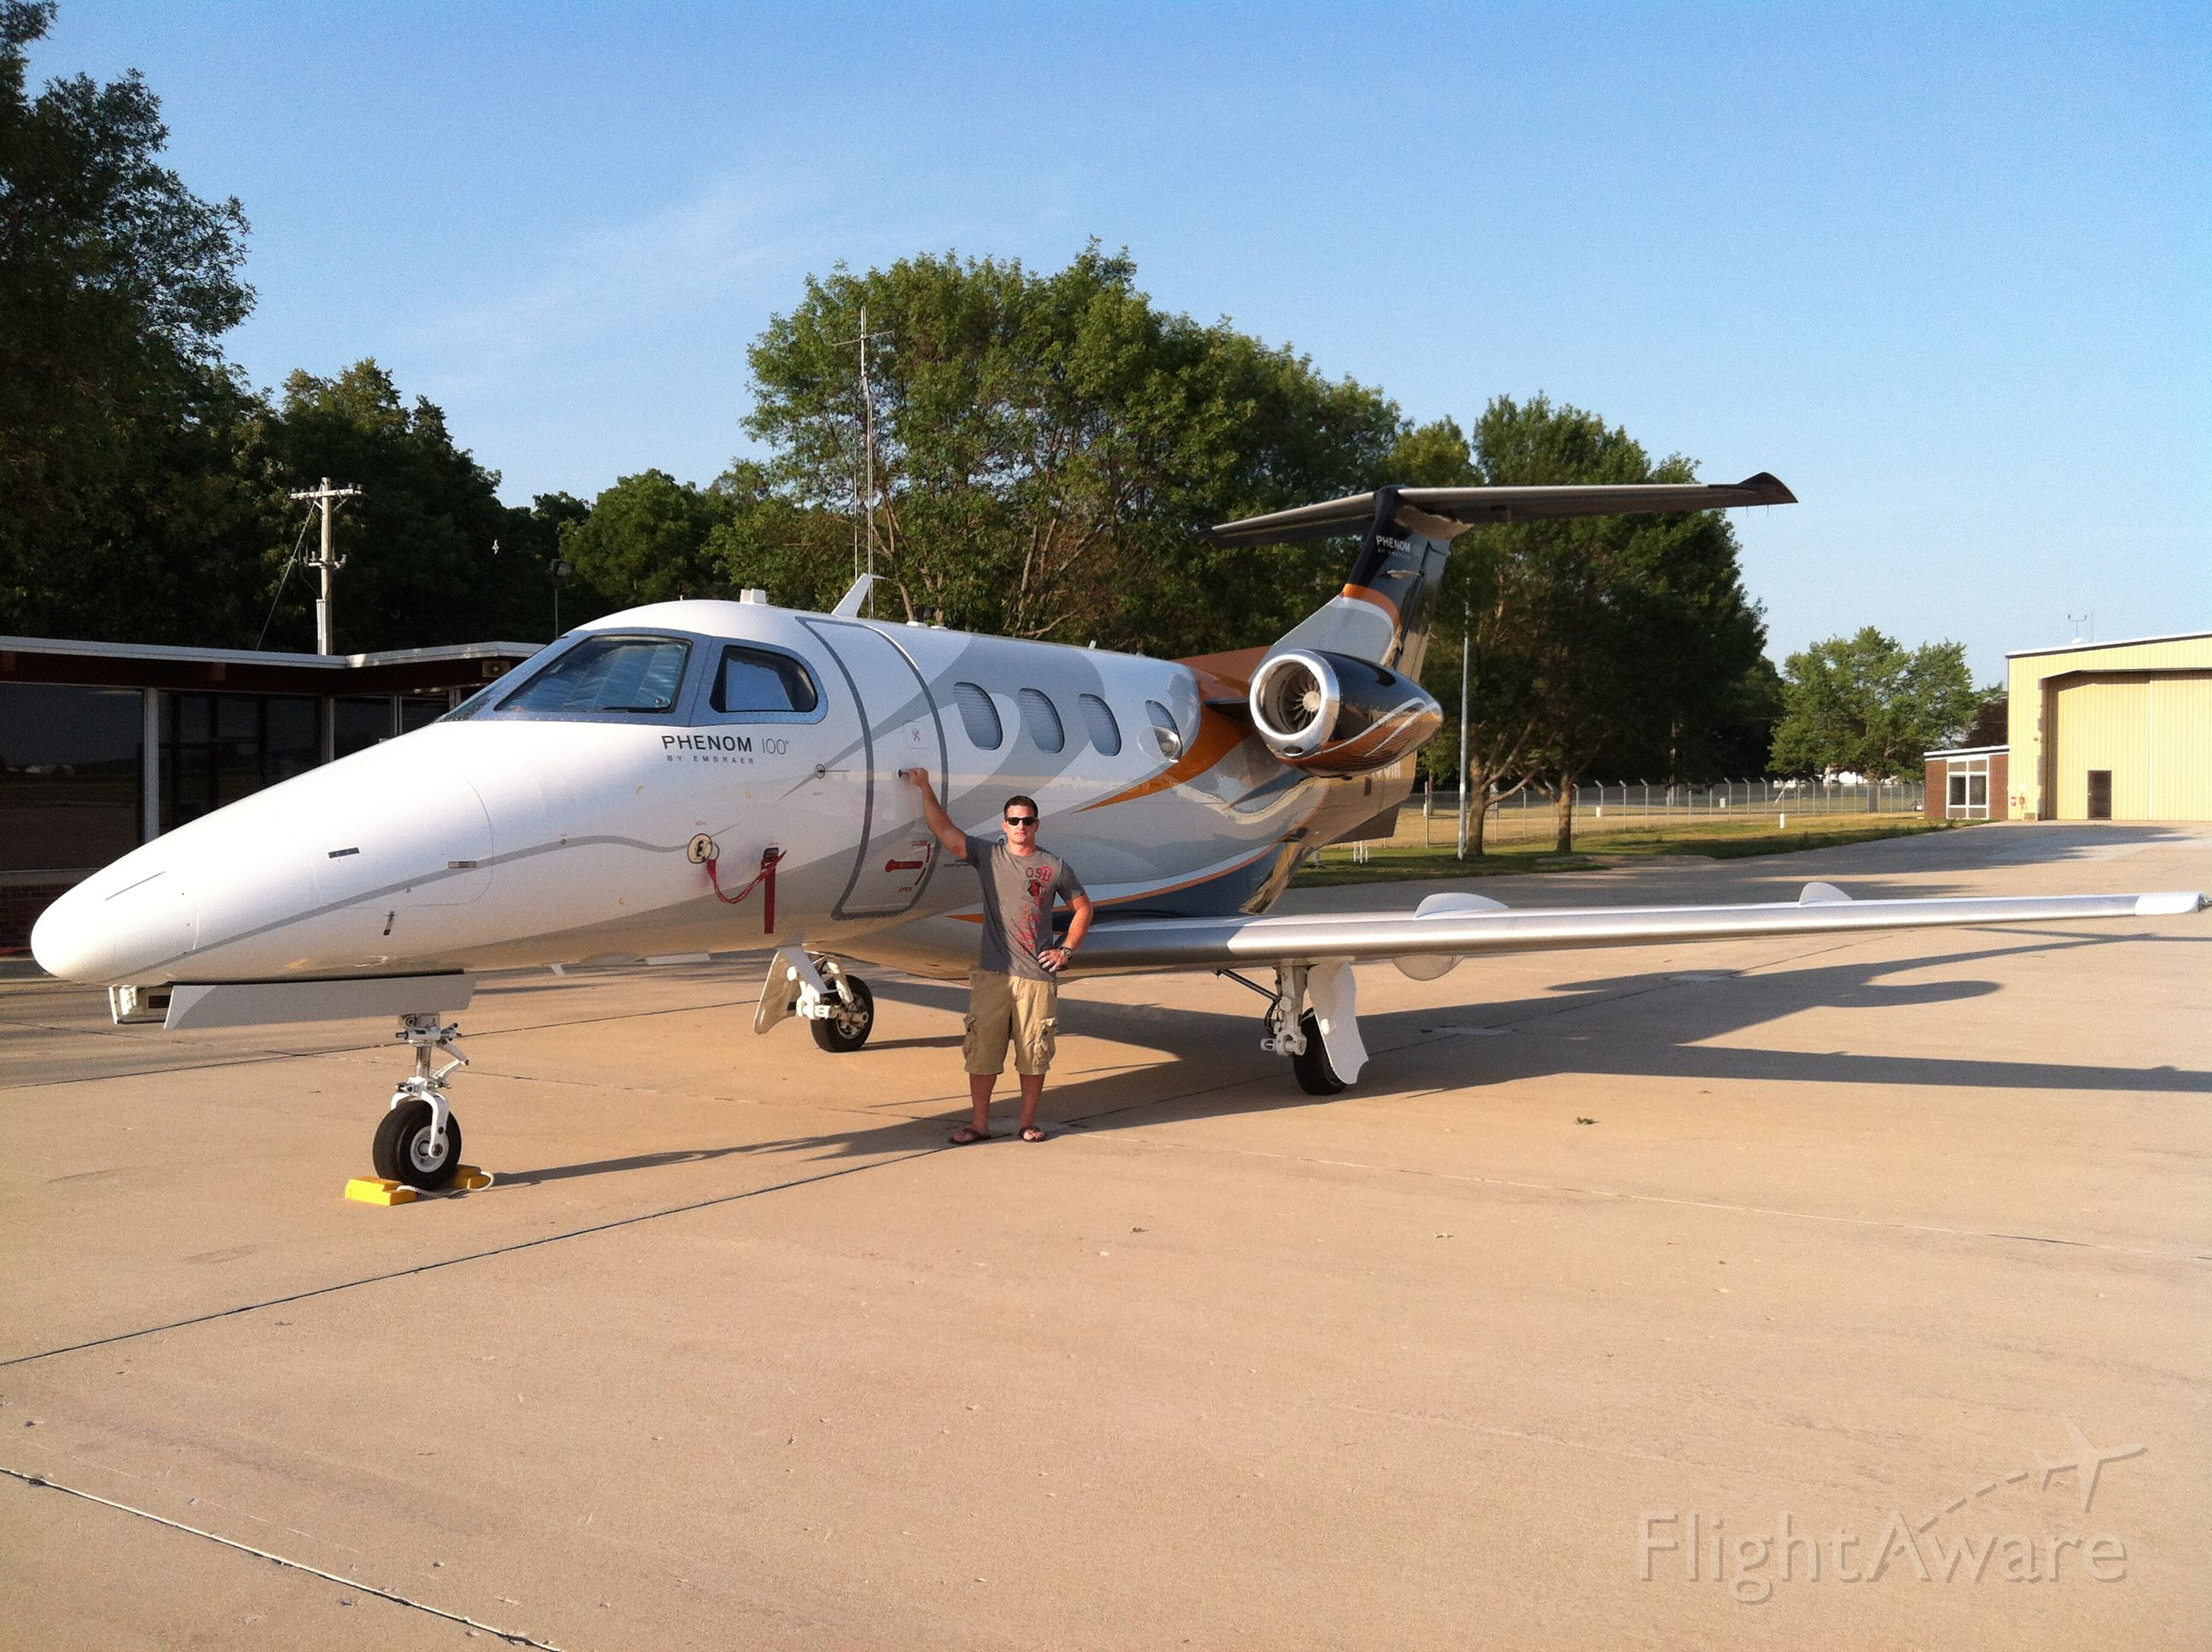 Embraer Phenom 100 — - Just came in with a famous country music artist from Memphis